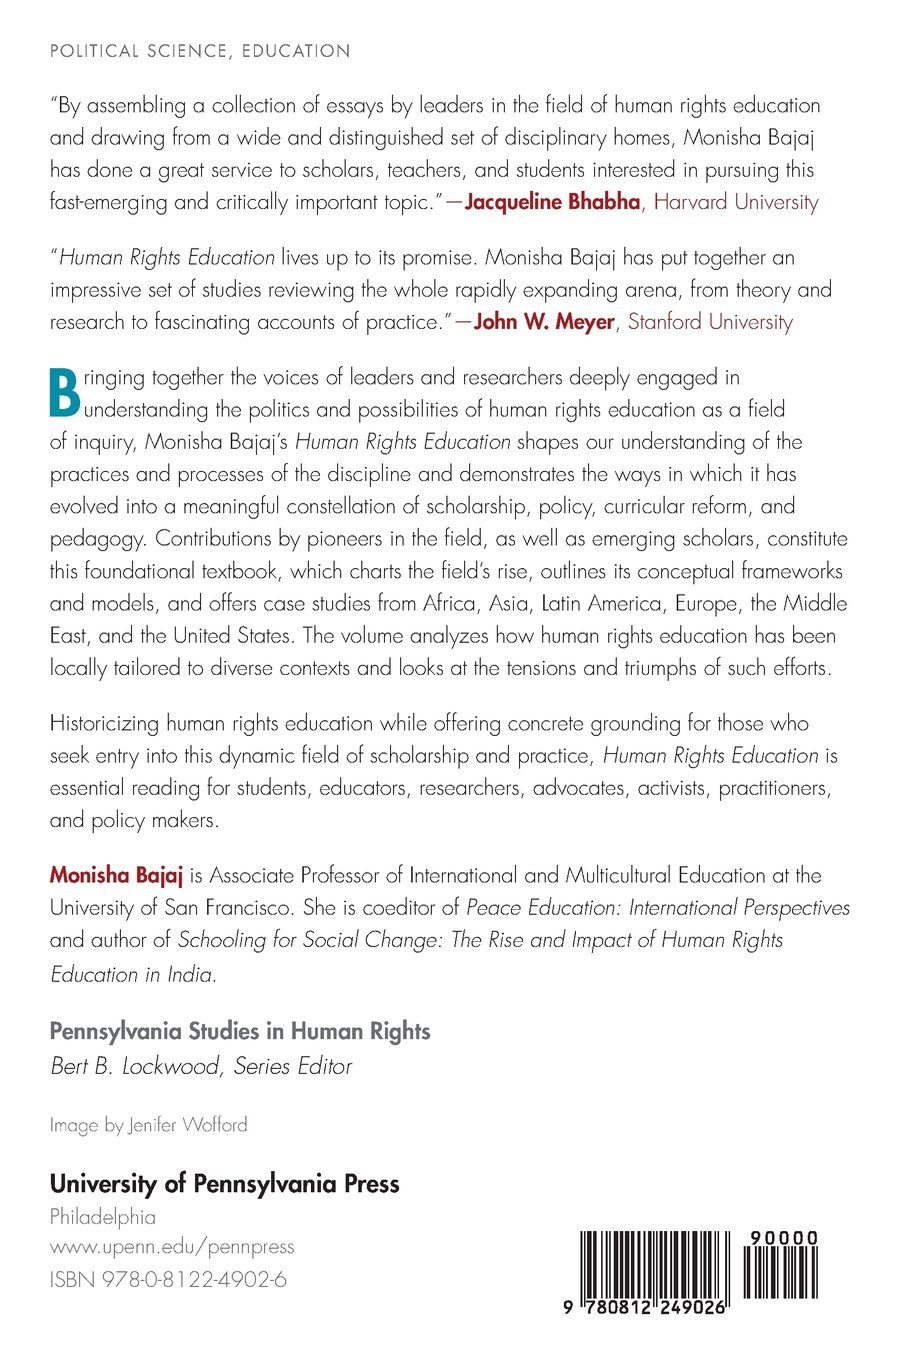 university of san francisco essay human rights education theory research praxis pennsylvania